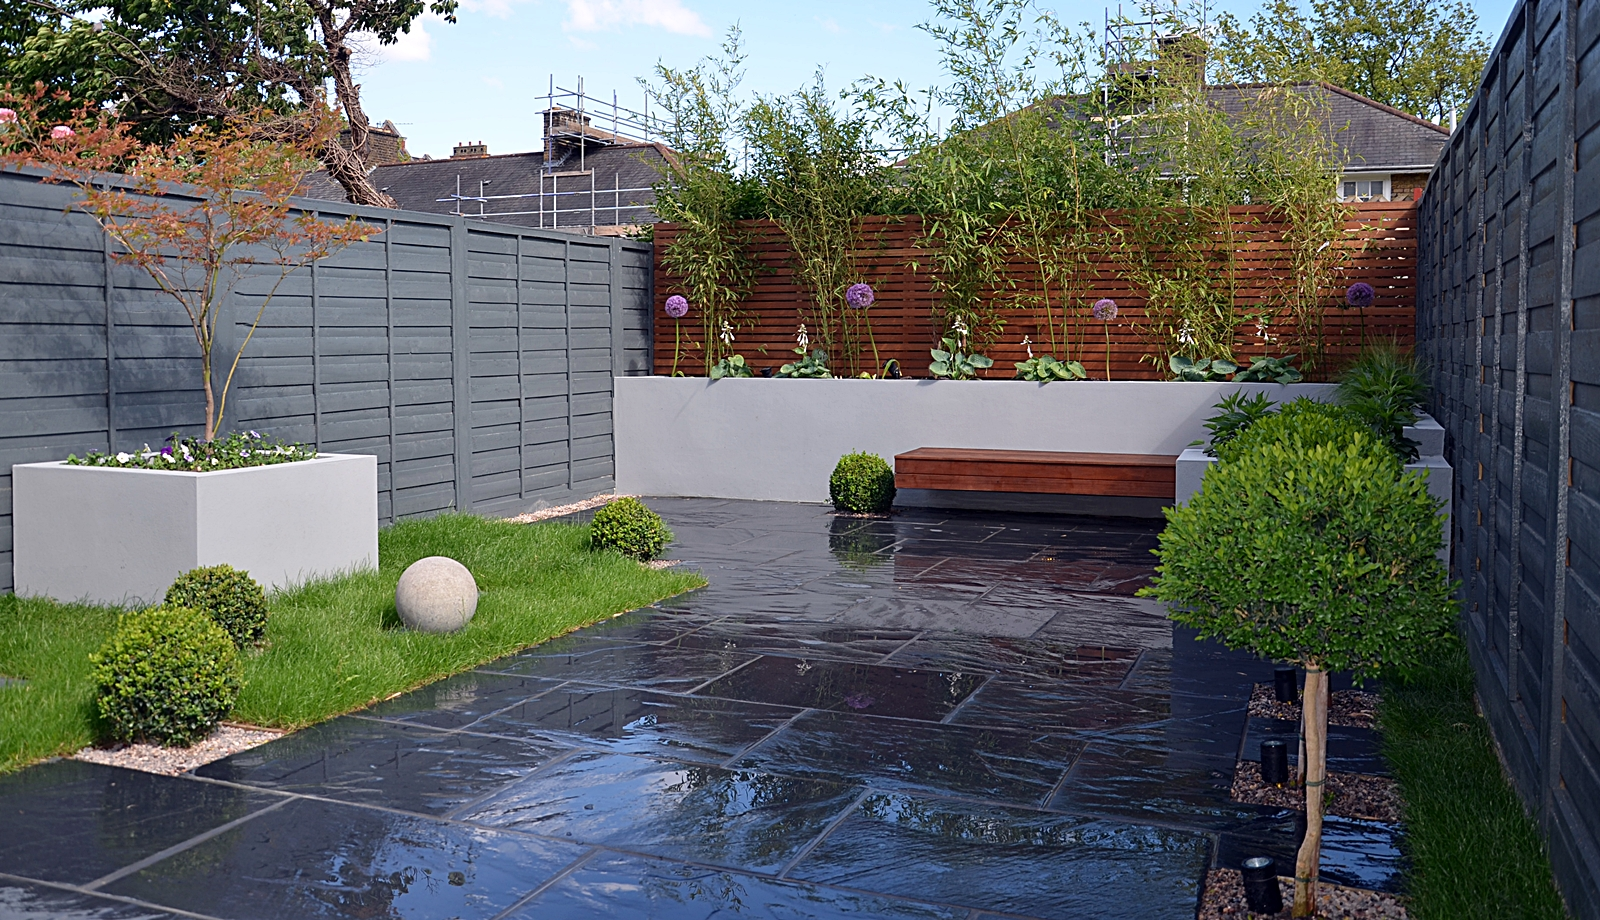 Lawn archives london garden blog for Contemporary garden design ideas